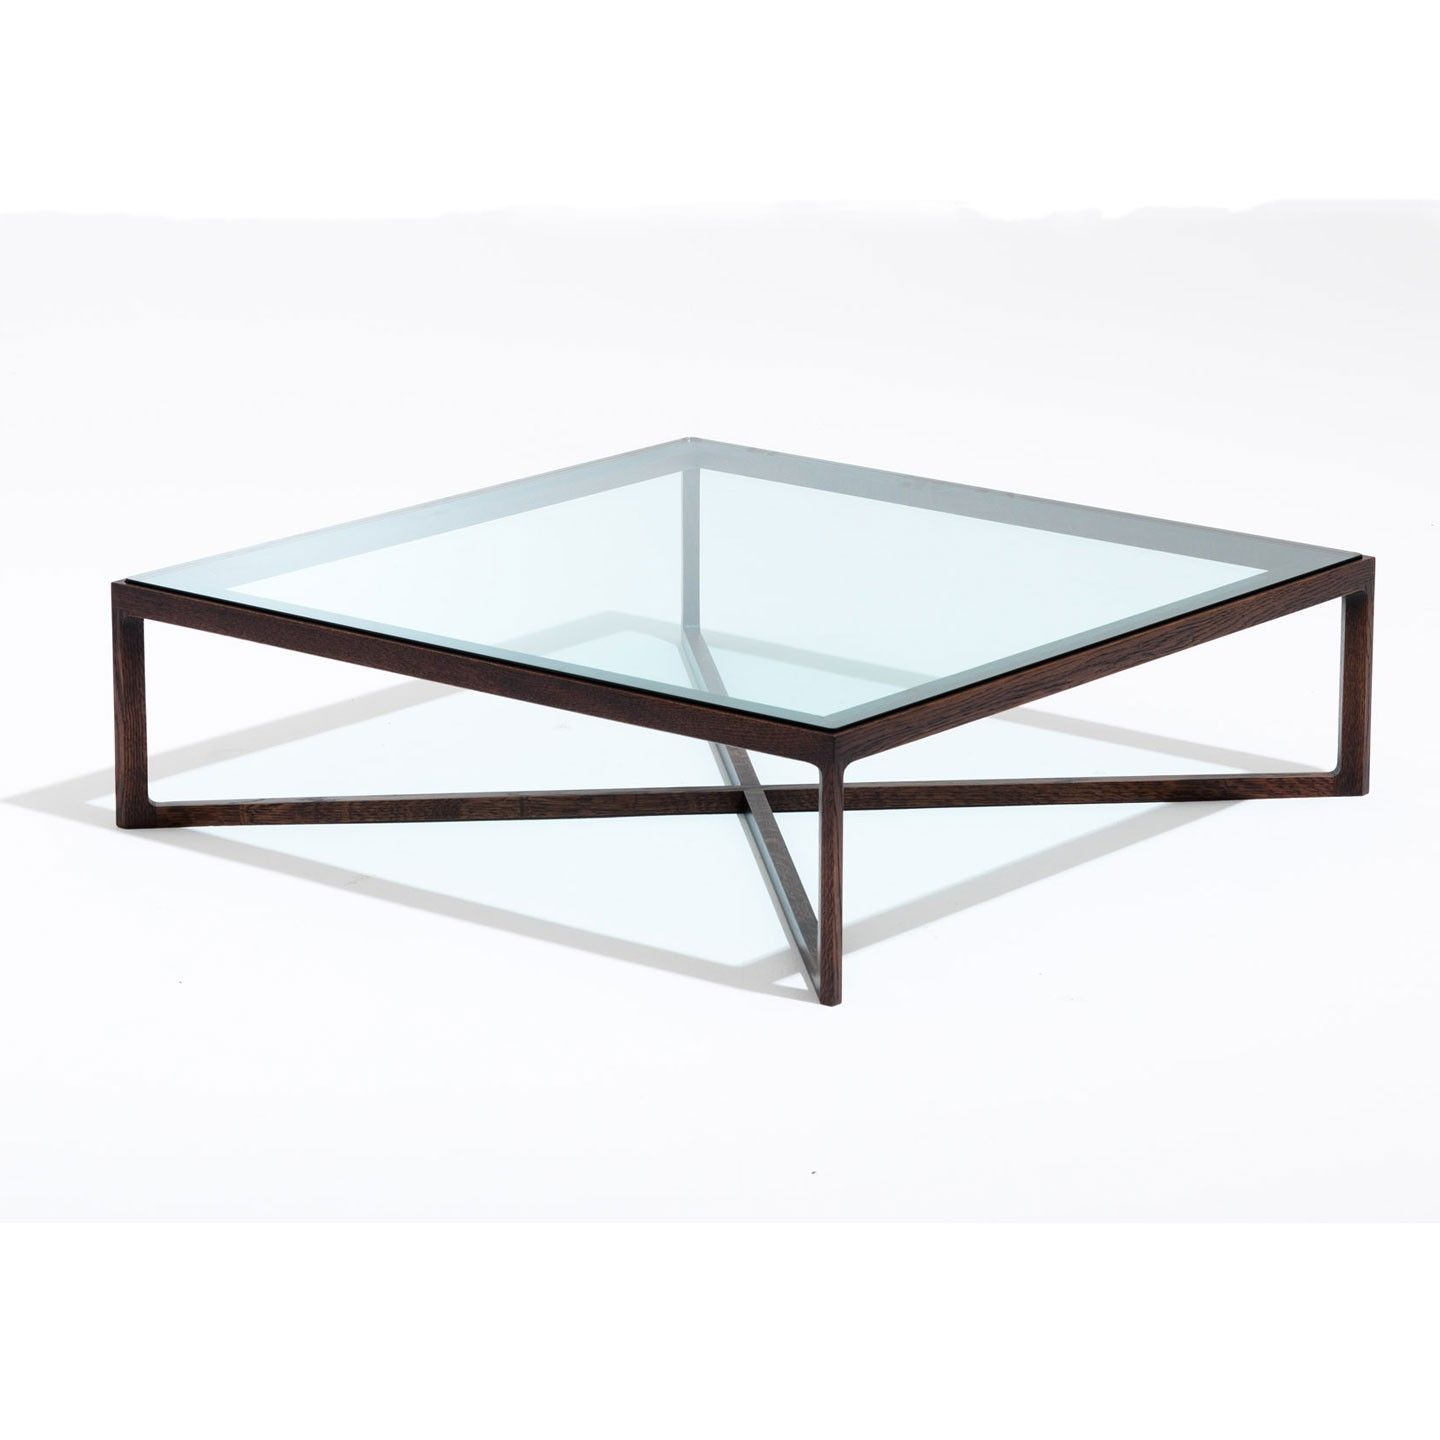 Glass top coffee tables with metal base - Square Glass Top Coffee Table With Metal Base